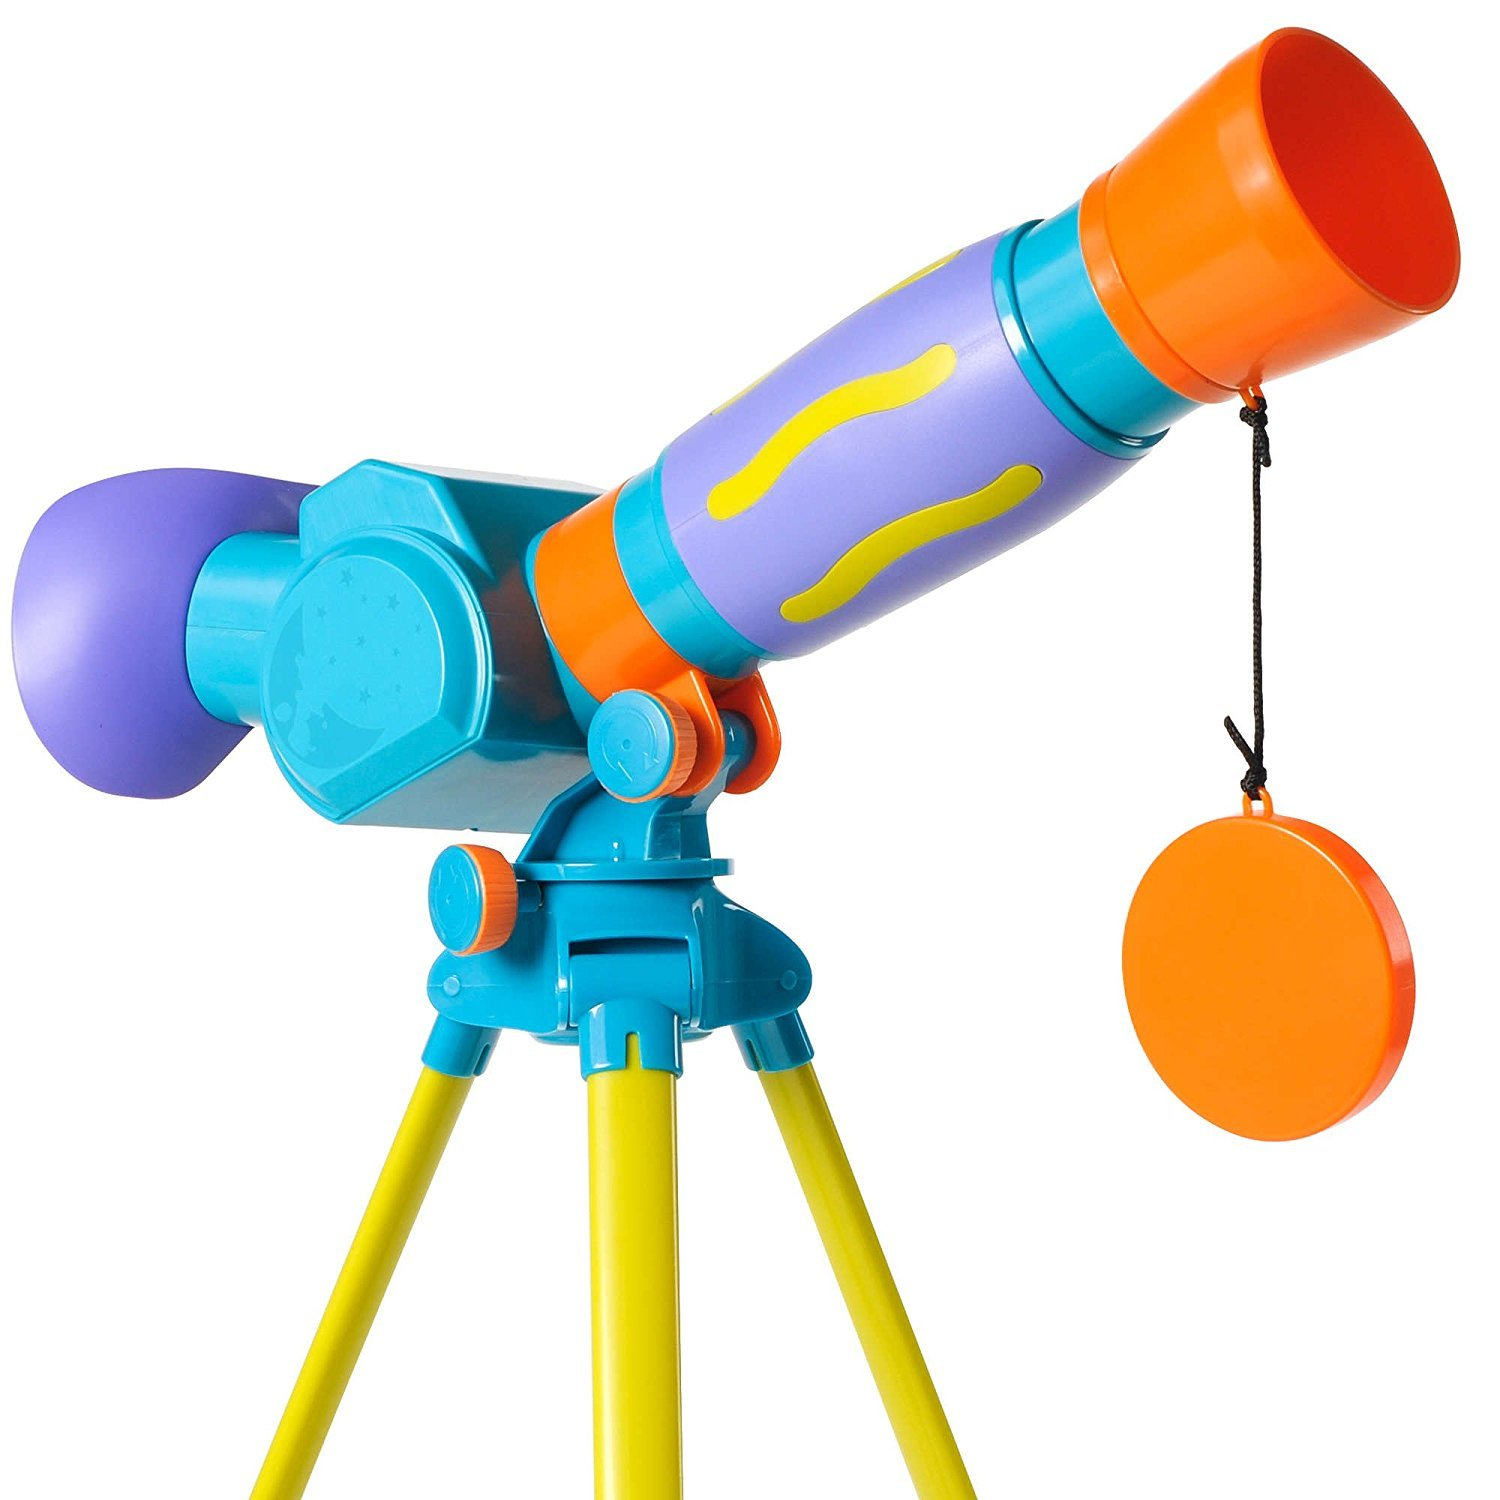 Educational Insights Geosafari Jr. My First Telescope Stem Toy for Boys & Girls 3+ by Educational Insights